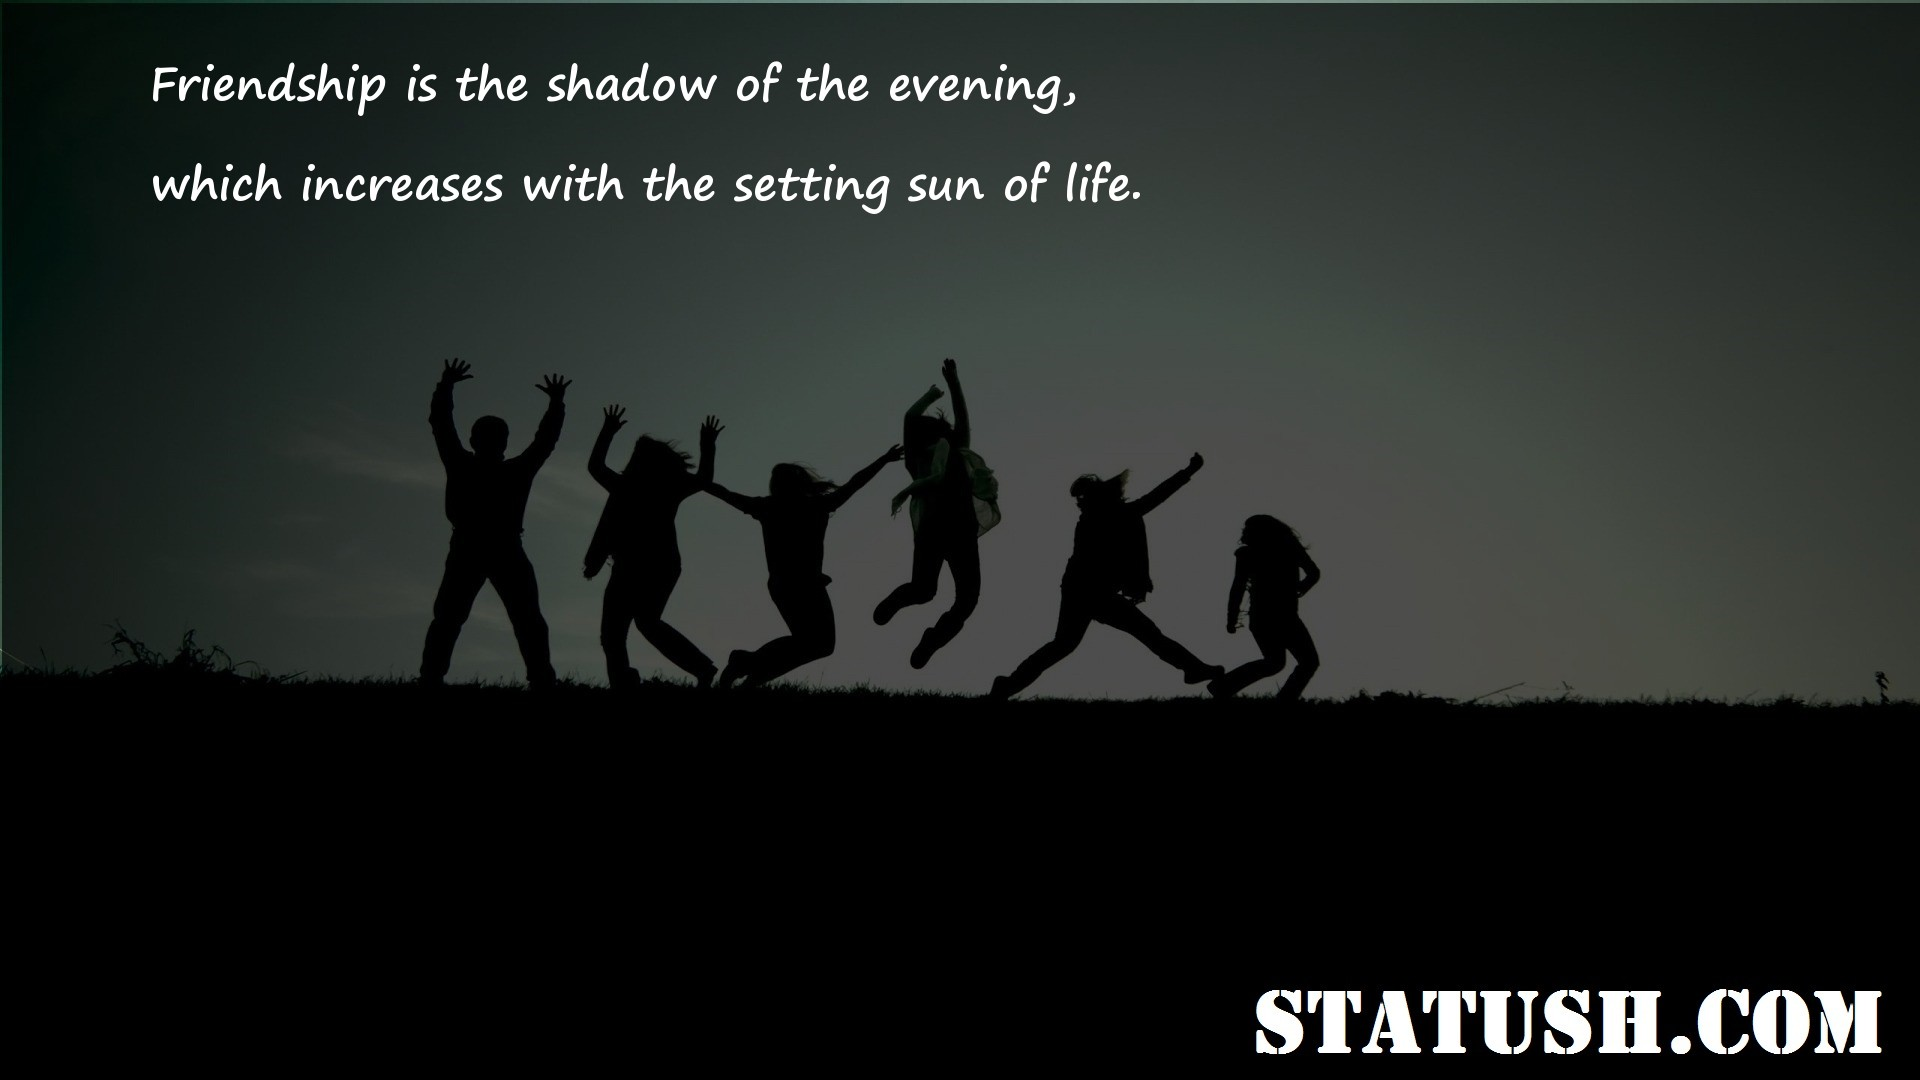 Friendship is the shadow of the evening